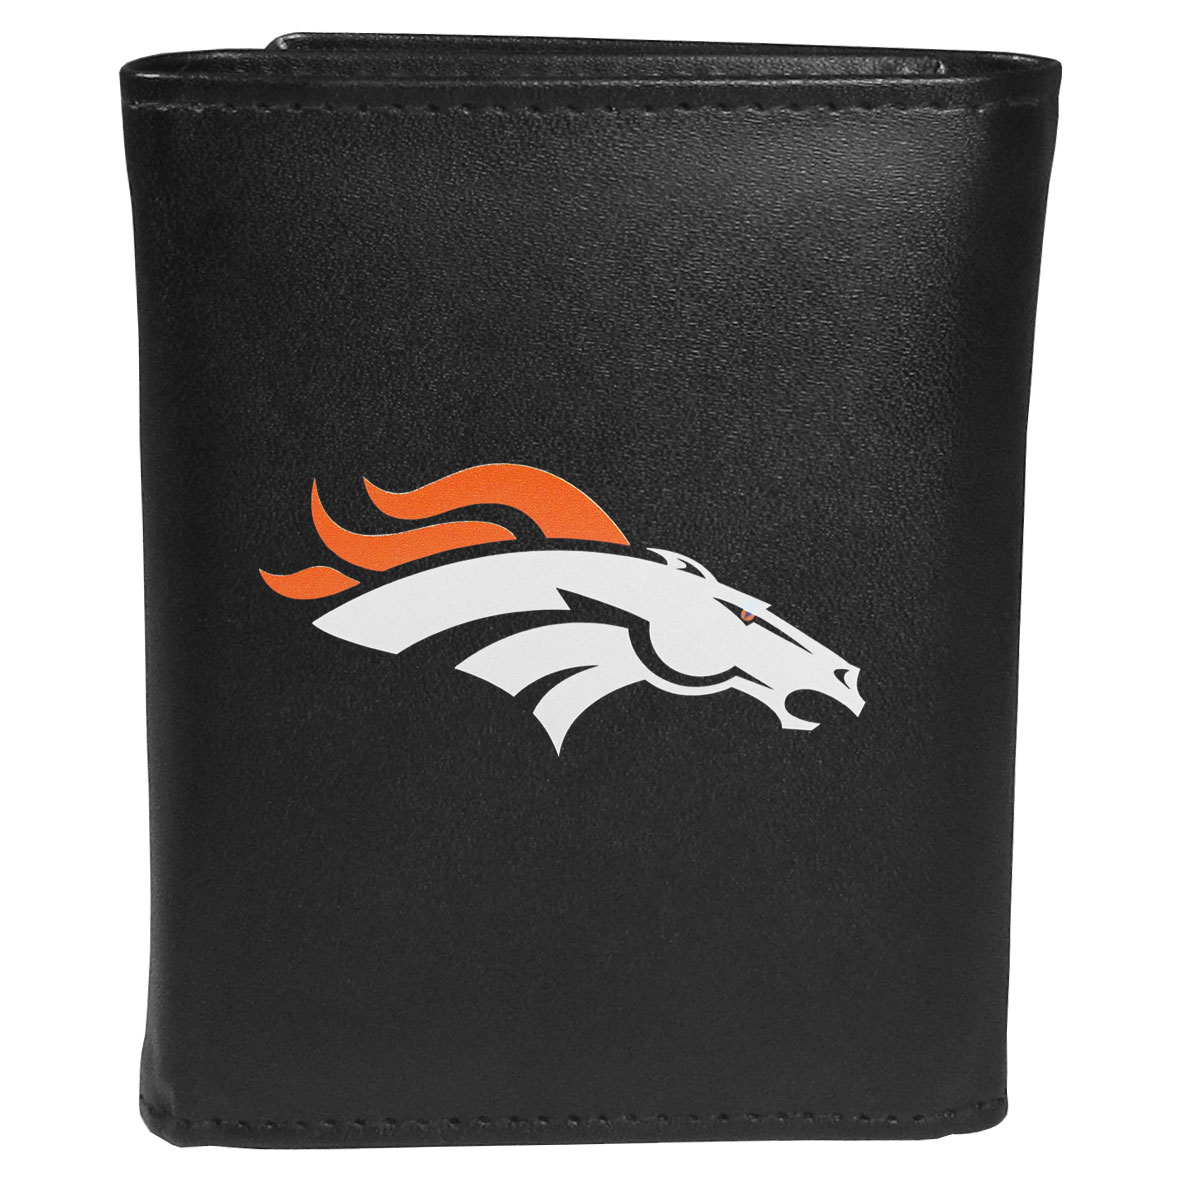 Denver Broncos Leather Tri-fold Wallet, Large Logo - Our classic fine leather tri-fold wallet is meticulously crafted with genuine leather that will age beautifully so you will have a quality wallet for years to come. This is fan apparel at its finest. The wallet is packed with organizational  features; lots of credit card slots, large billfold pocket, and a window ID slot. The front of the wallet features an extra large Denver Broncos printed logo.